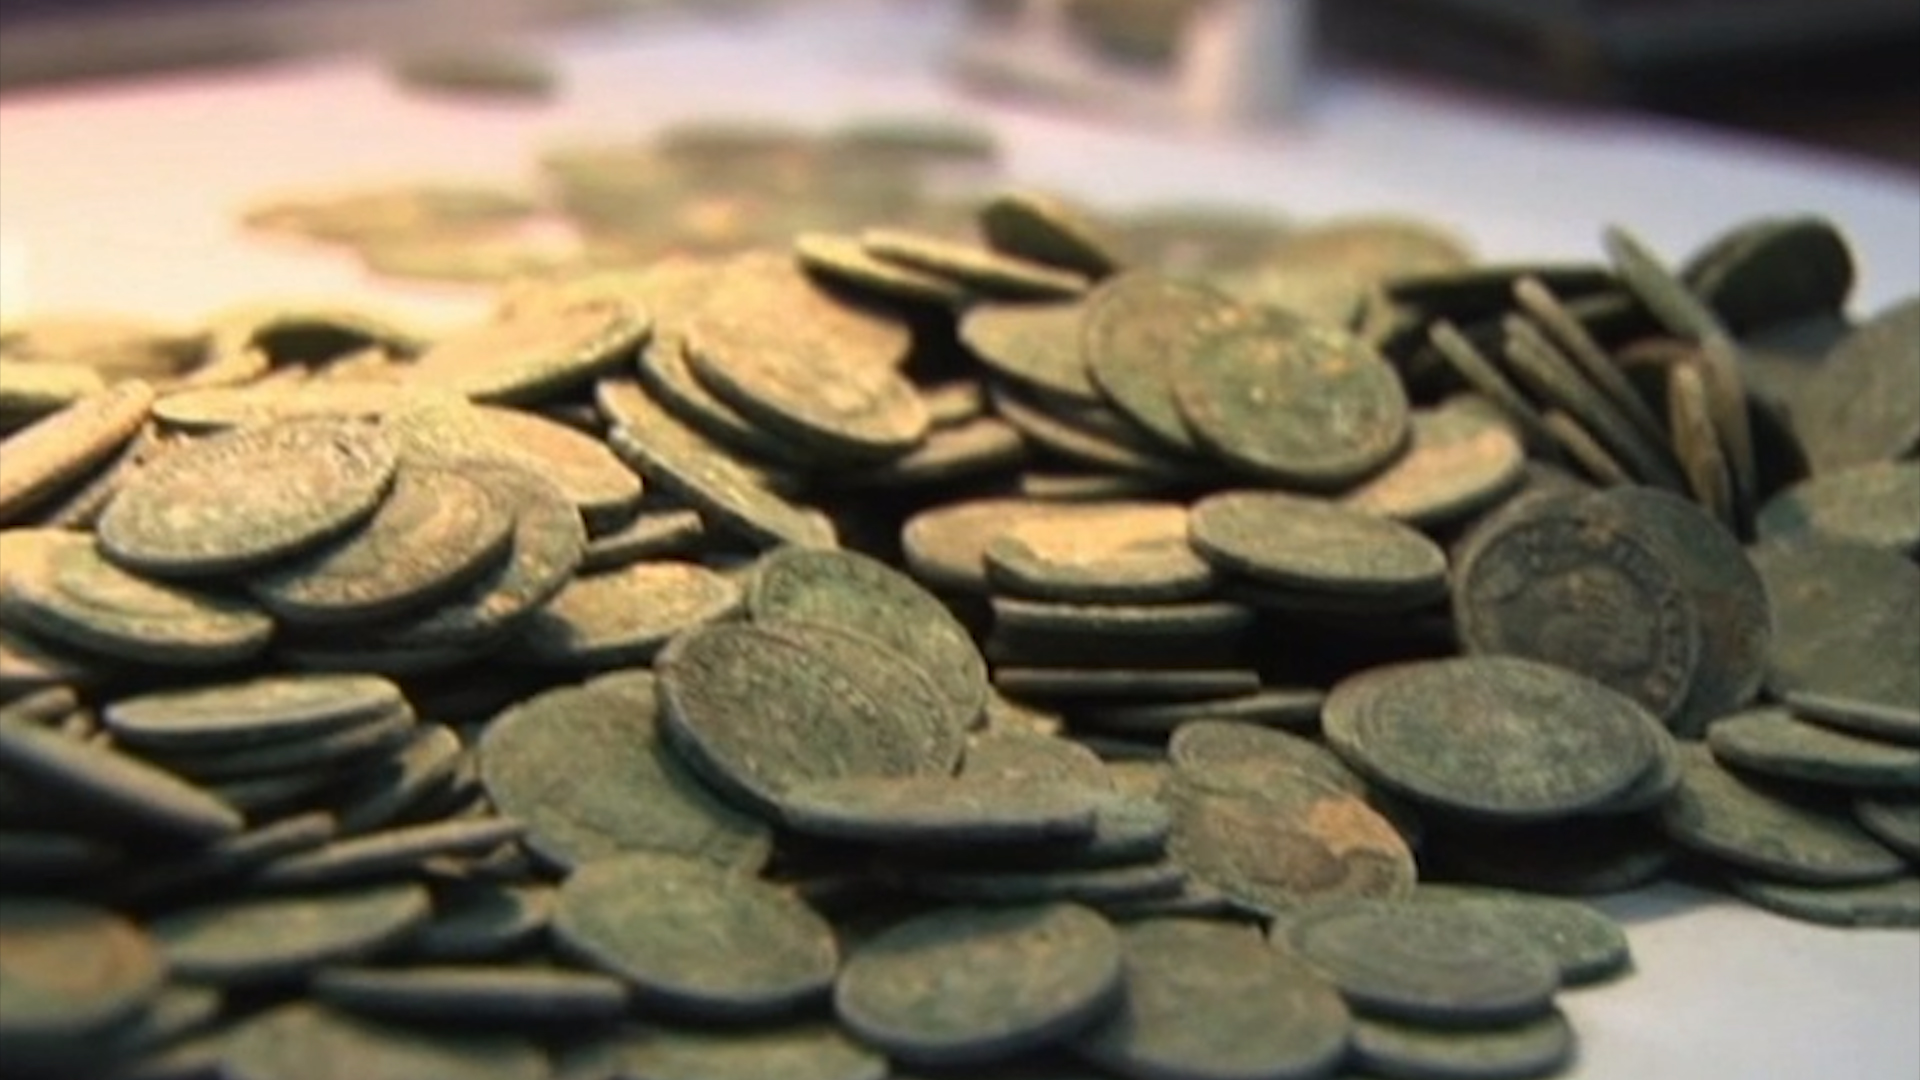 Hundreds of Roman gold coins found in basement of old theater - CNN